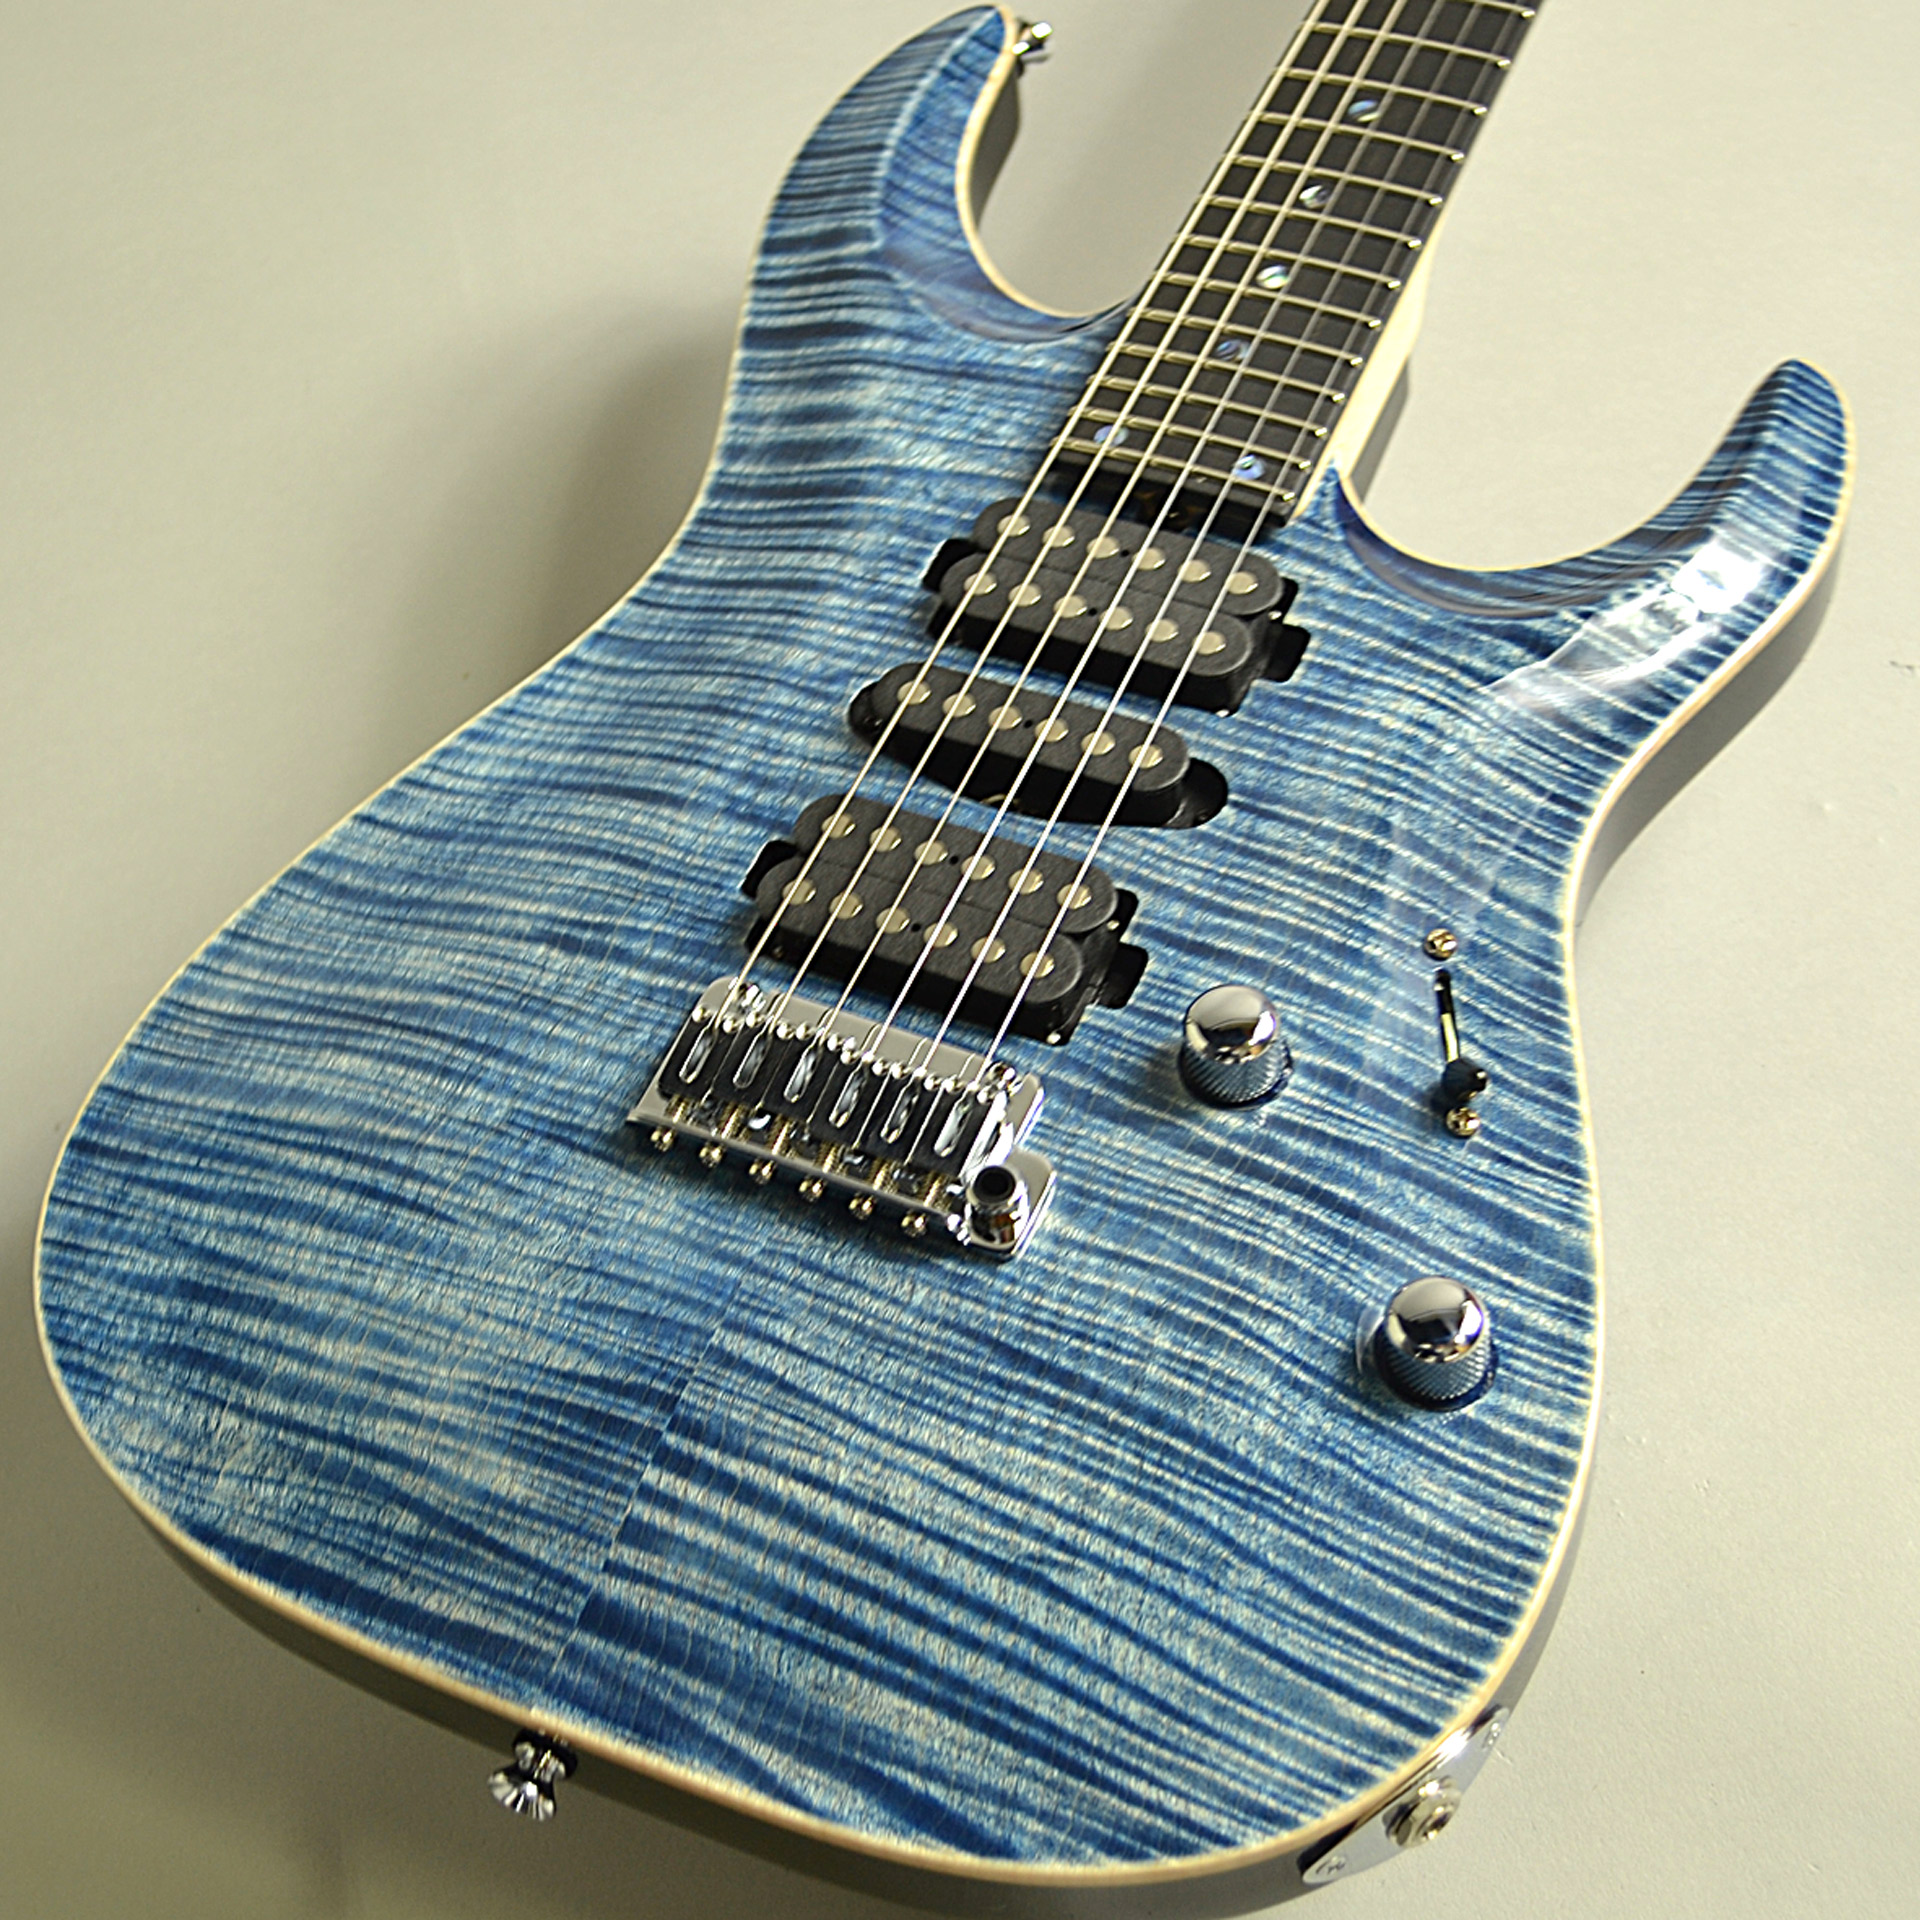 DST-Pro24 Carvedtop 5A FlameMapleのボディトップ-アップ画像